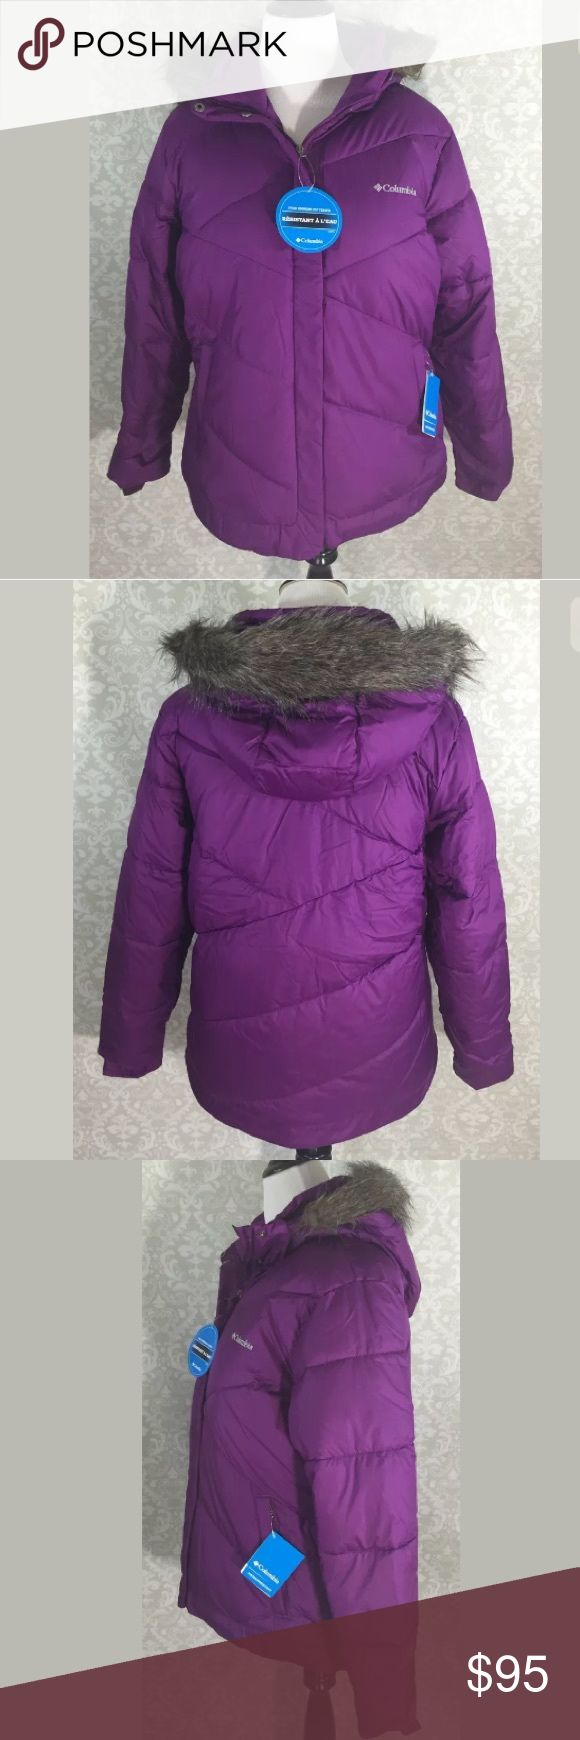 NEW Columbia Coat Plus Size 1X Purple Ski Puffer Columbia Coat Size: 1X Color: purple Condition: New with tags (originally $160) Measurements: Bust= 26, Length= 27.5, Sleeve= 24.5 Columbia Jackets & Coats Puffers